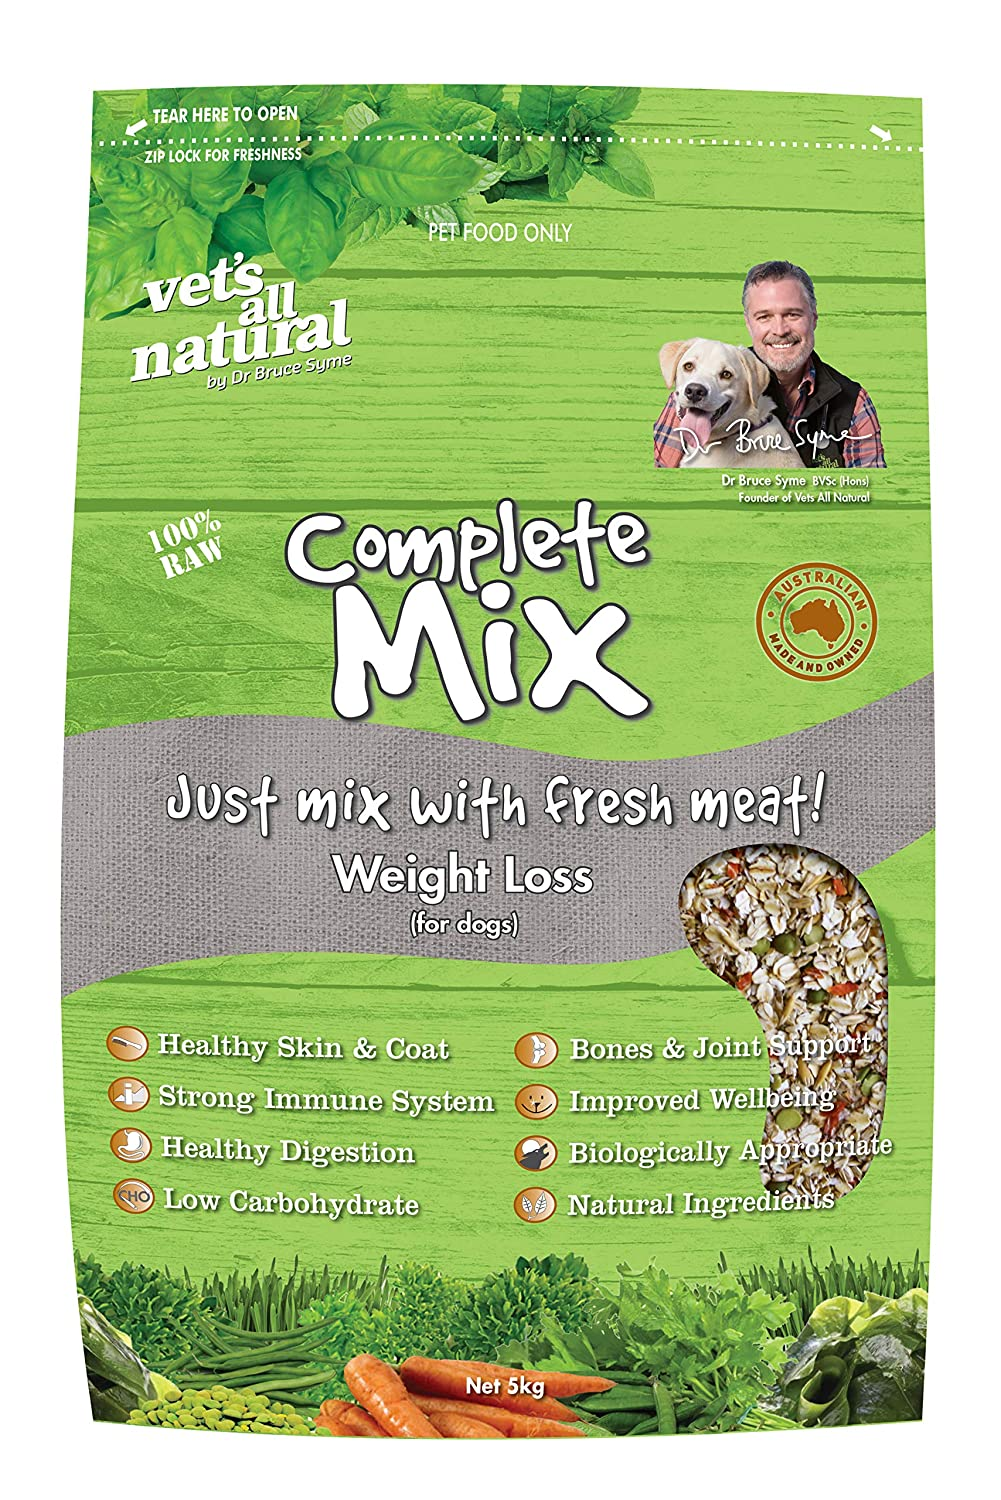 5kg Vets All Natural 5kg Complete Mix Weight Loss